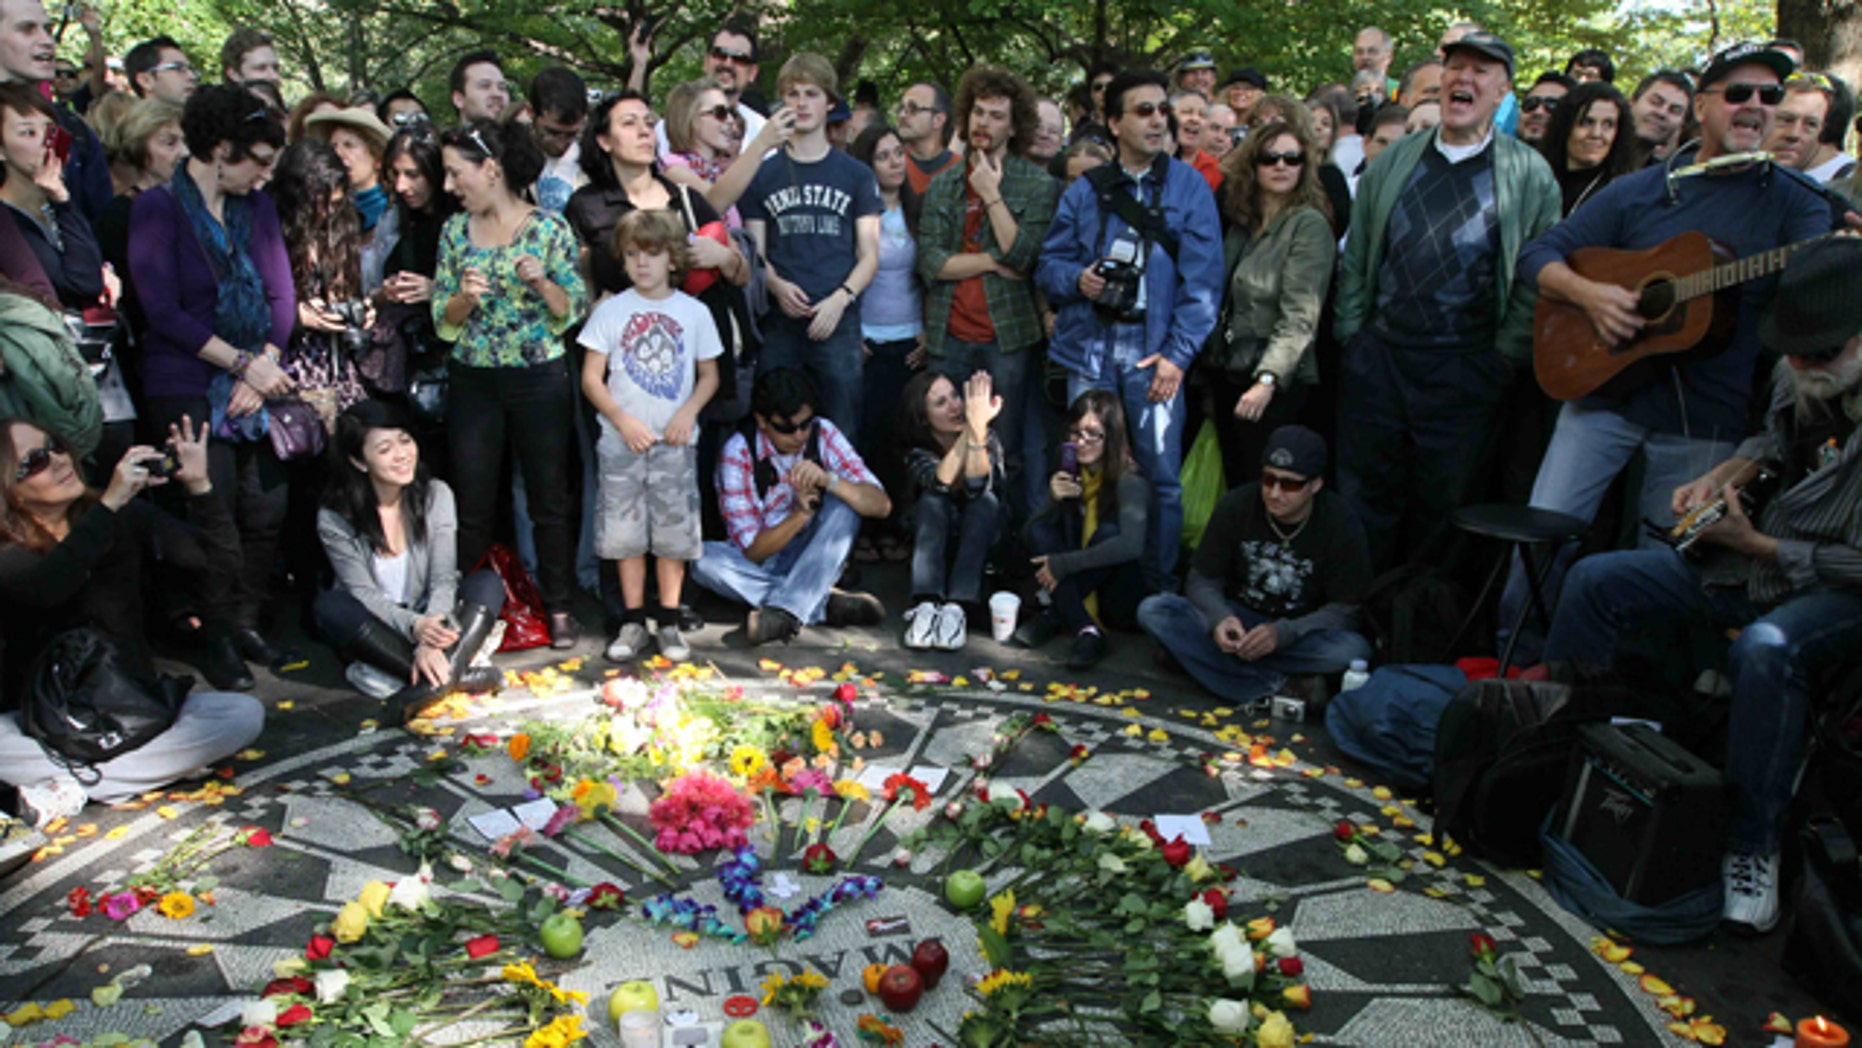 Oct. 9: People sing as they gather around the Imagine mosaic in Strawberry Fields in New York's Central Park, the day that would have been John Lennon's 70th birthday.